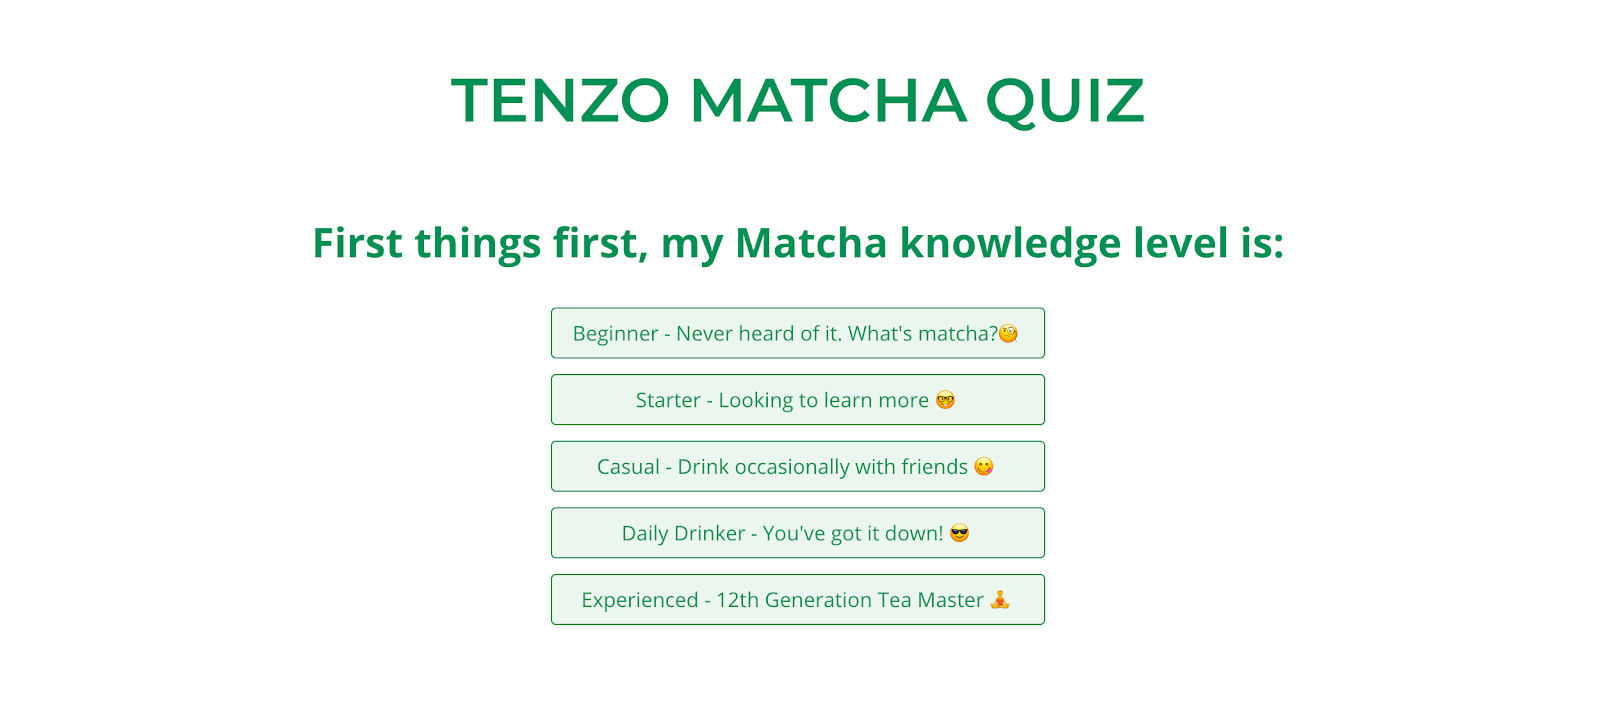 Tenzo Tea quiz question example